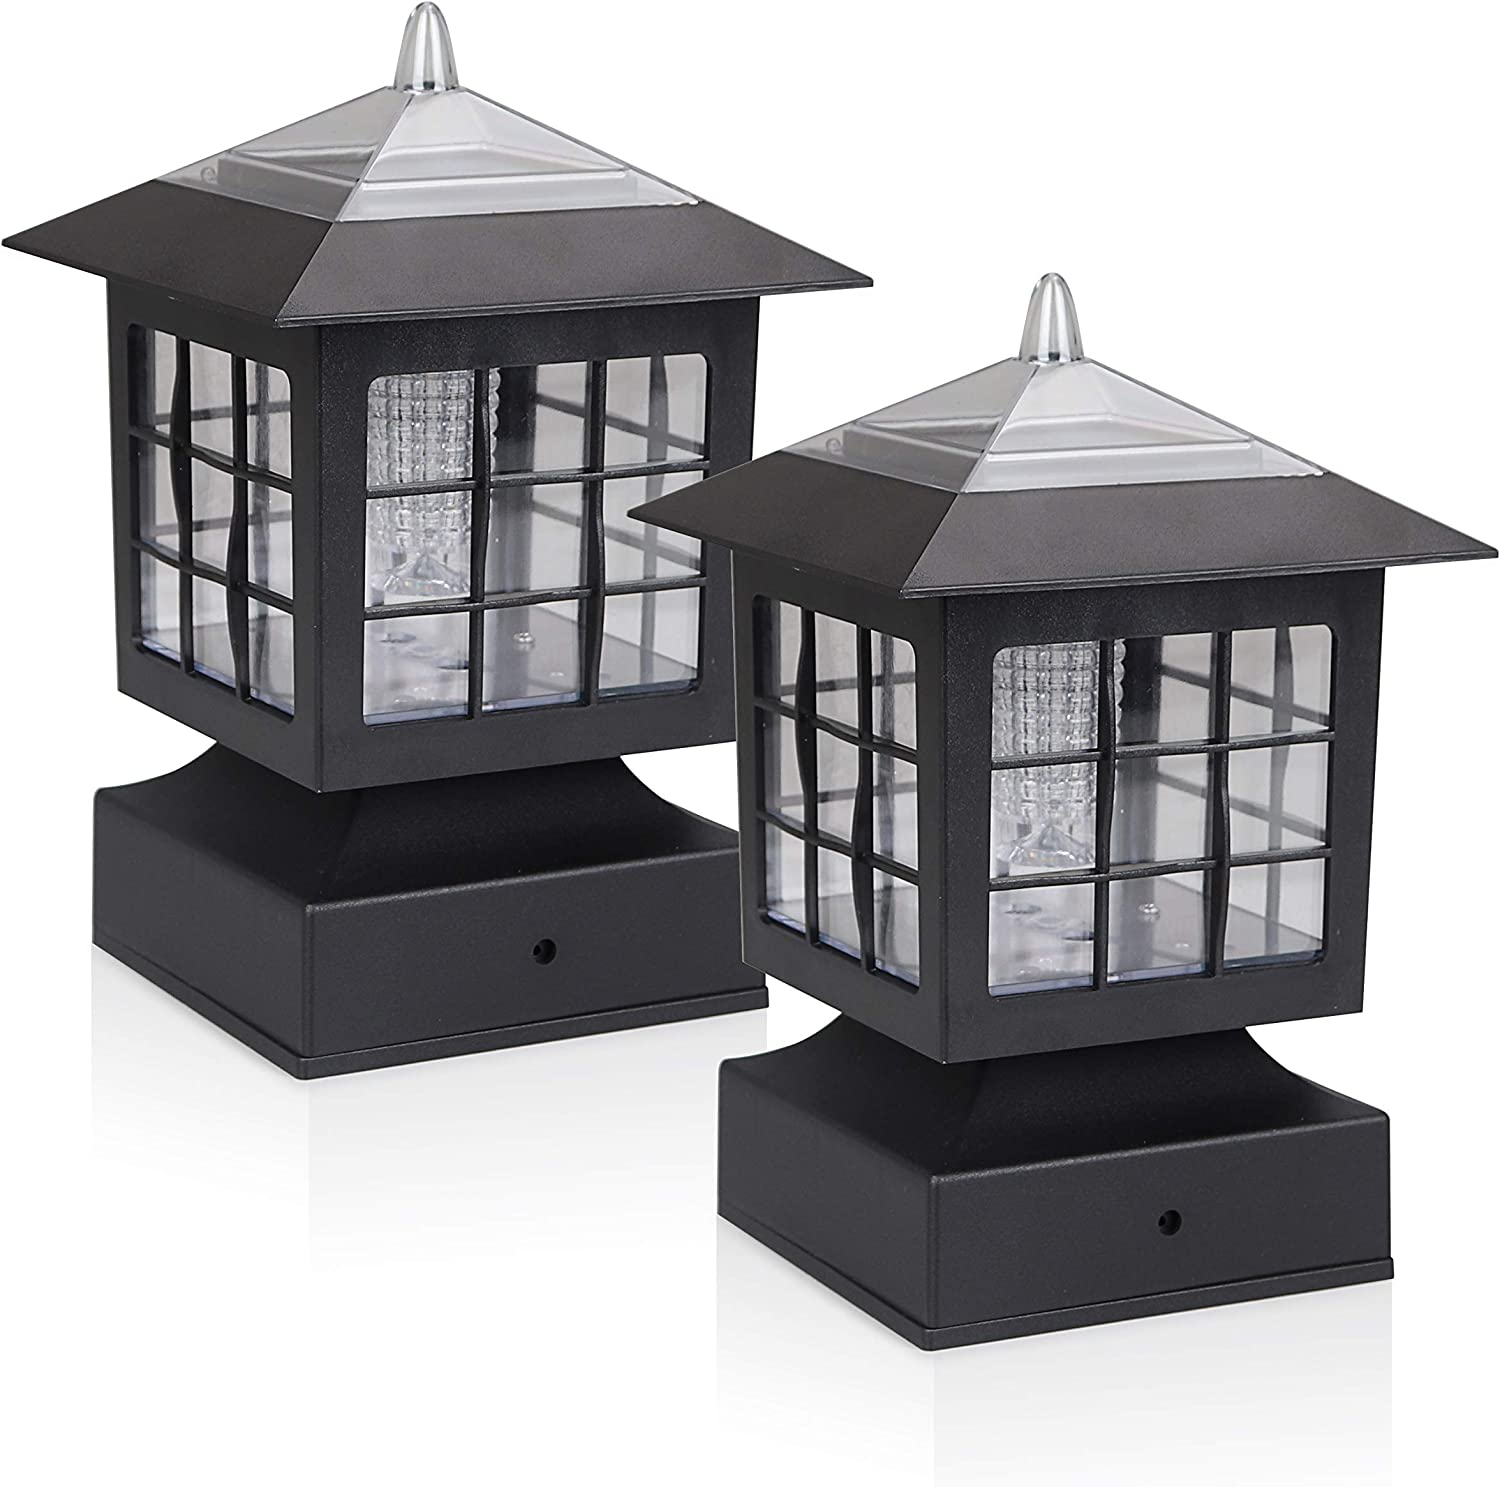 KMC LIGHTING KS101X2 Outdoor Solar Light 2 Pack with 4-Inch Fitter Base for Outdoor Garden Post Pole Mount 4.88X4.88X7.48""